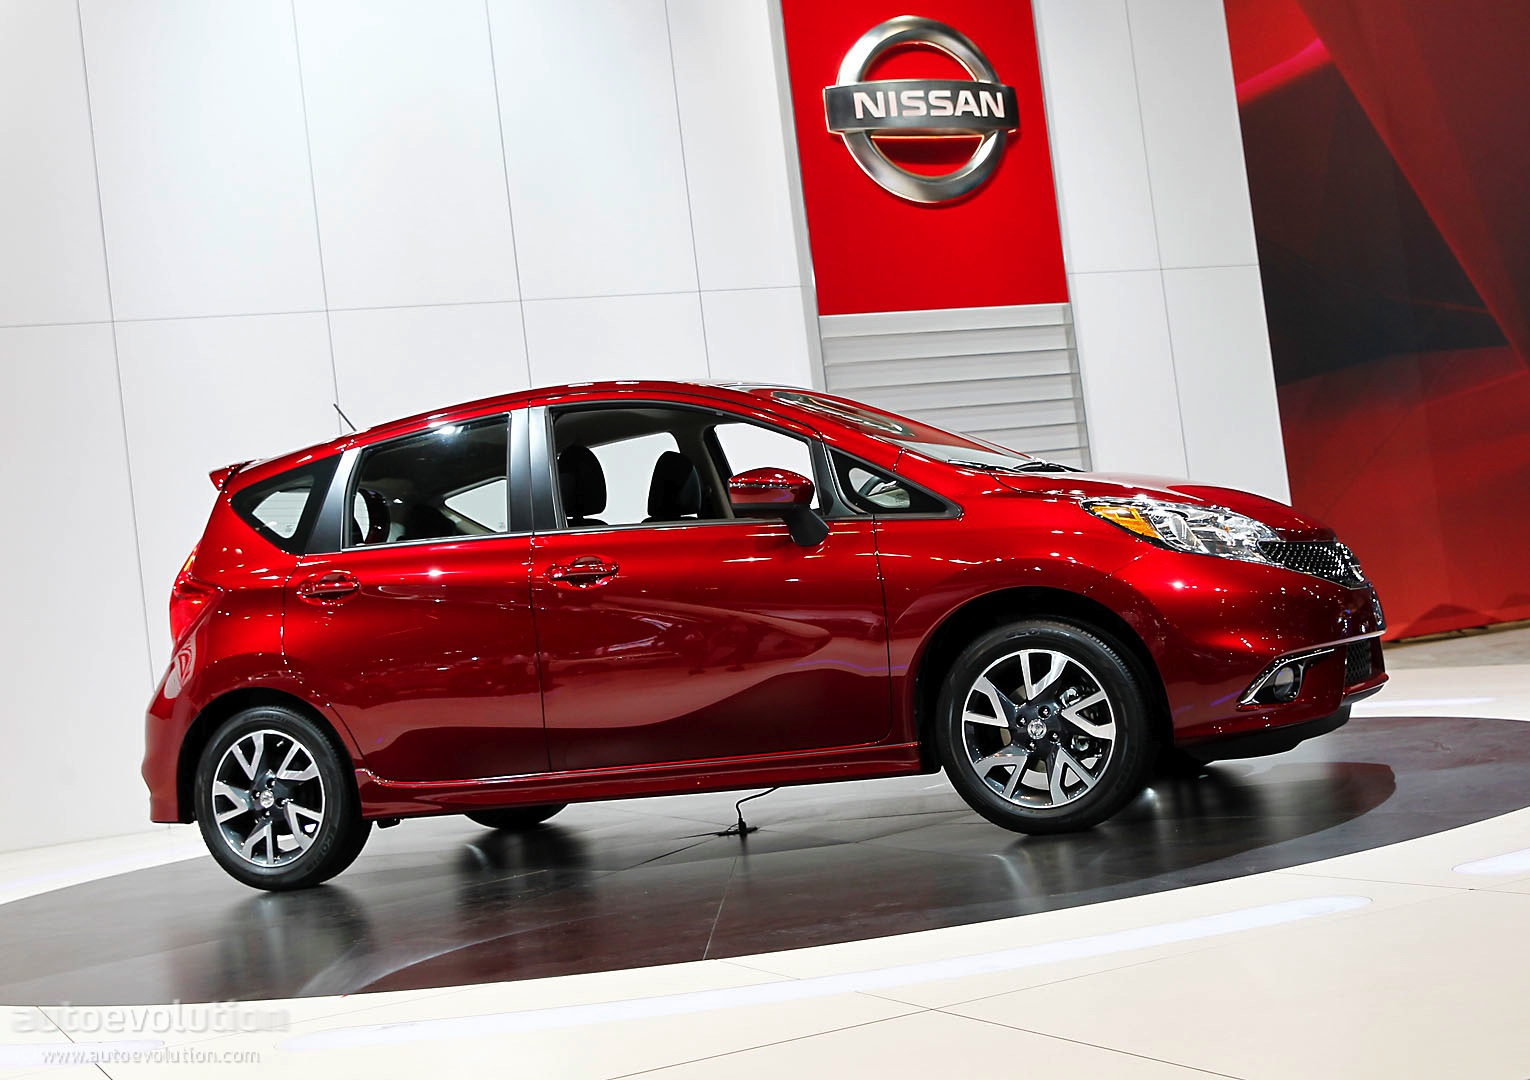 Does The Nissan Rogue 2014 Come Out When Does The Nissan Rogue 2014